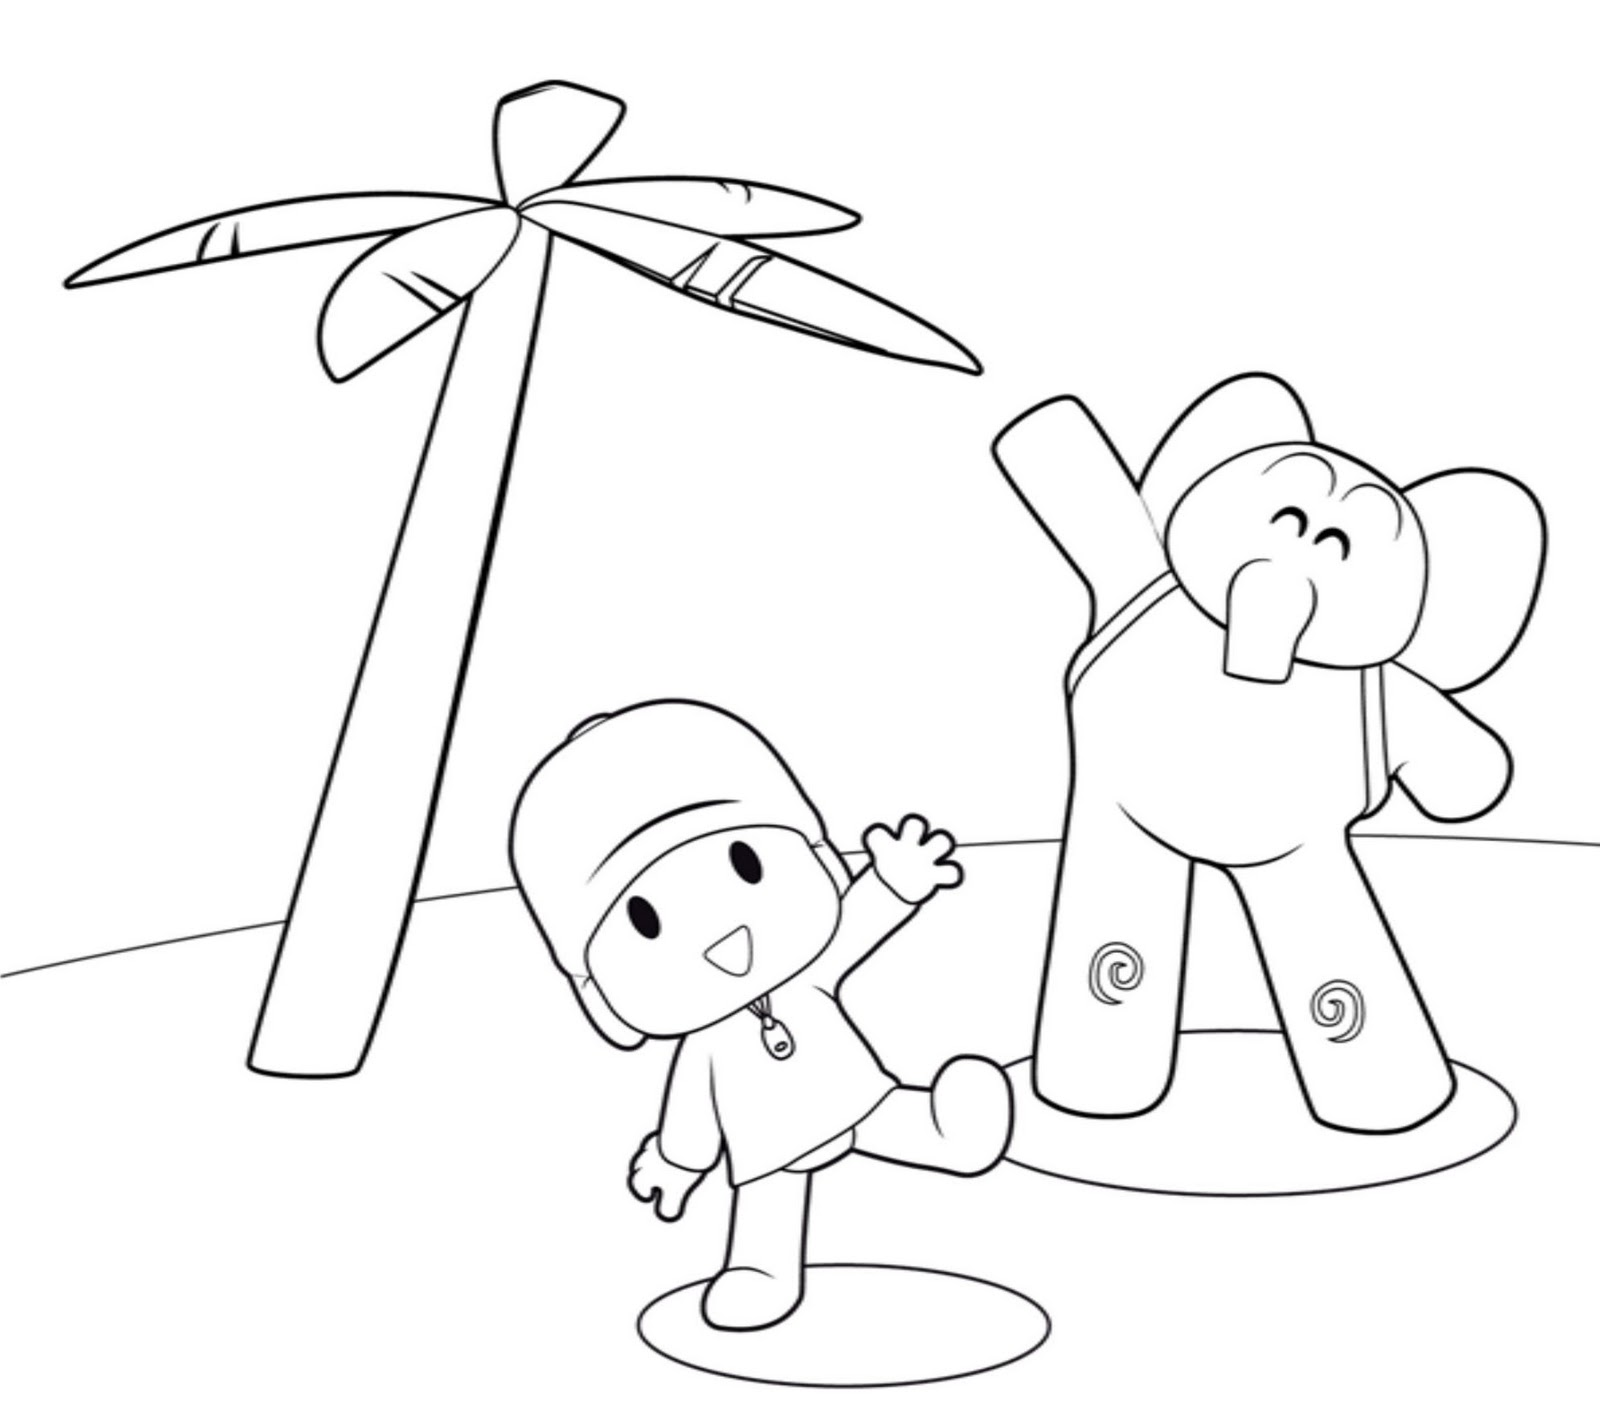 Free Printable Pocoyo Coloring Pages For Kids Free Coloring Pages For To Print